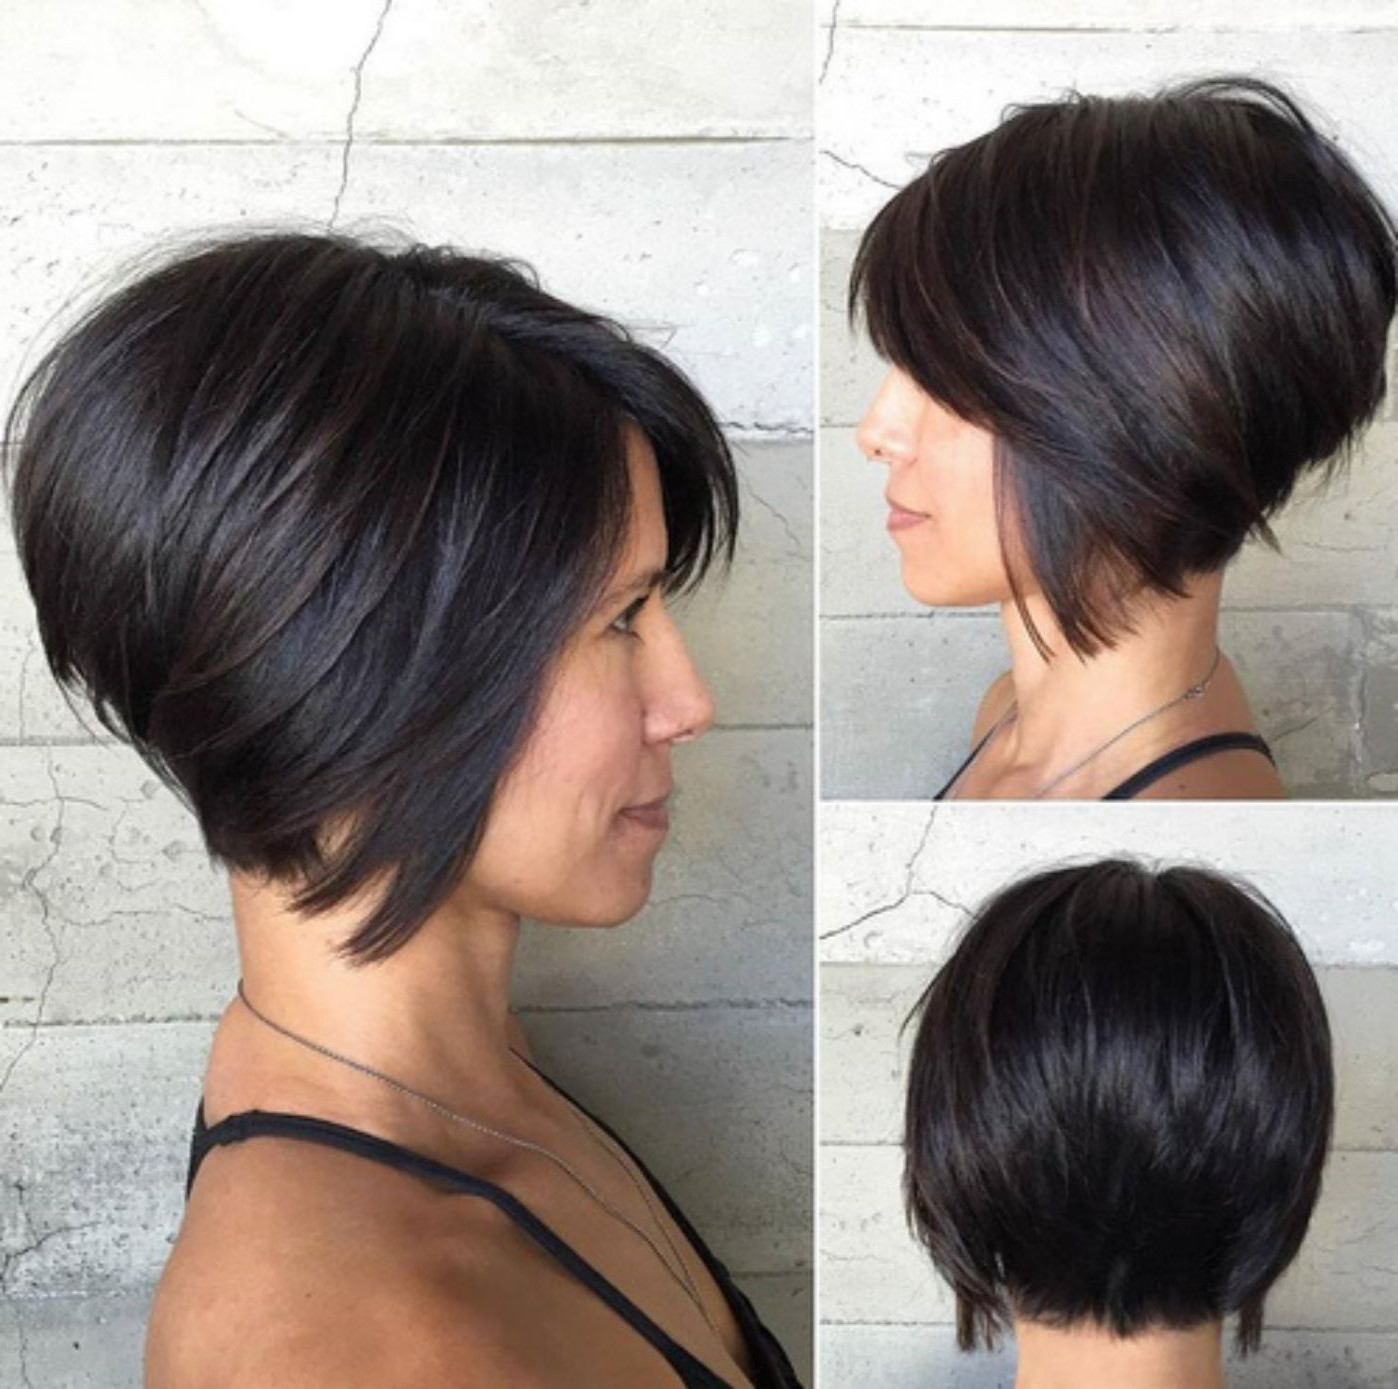 60 Classy Short Haircuts And Hairstyles For Thick Hair In 2018 Throughout Smooth Bob Hairstyles For Thick Hair (View 5 of 20)